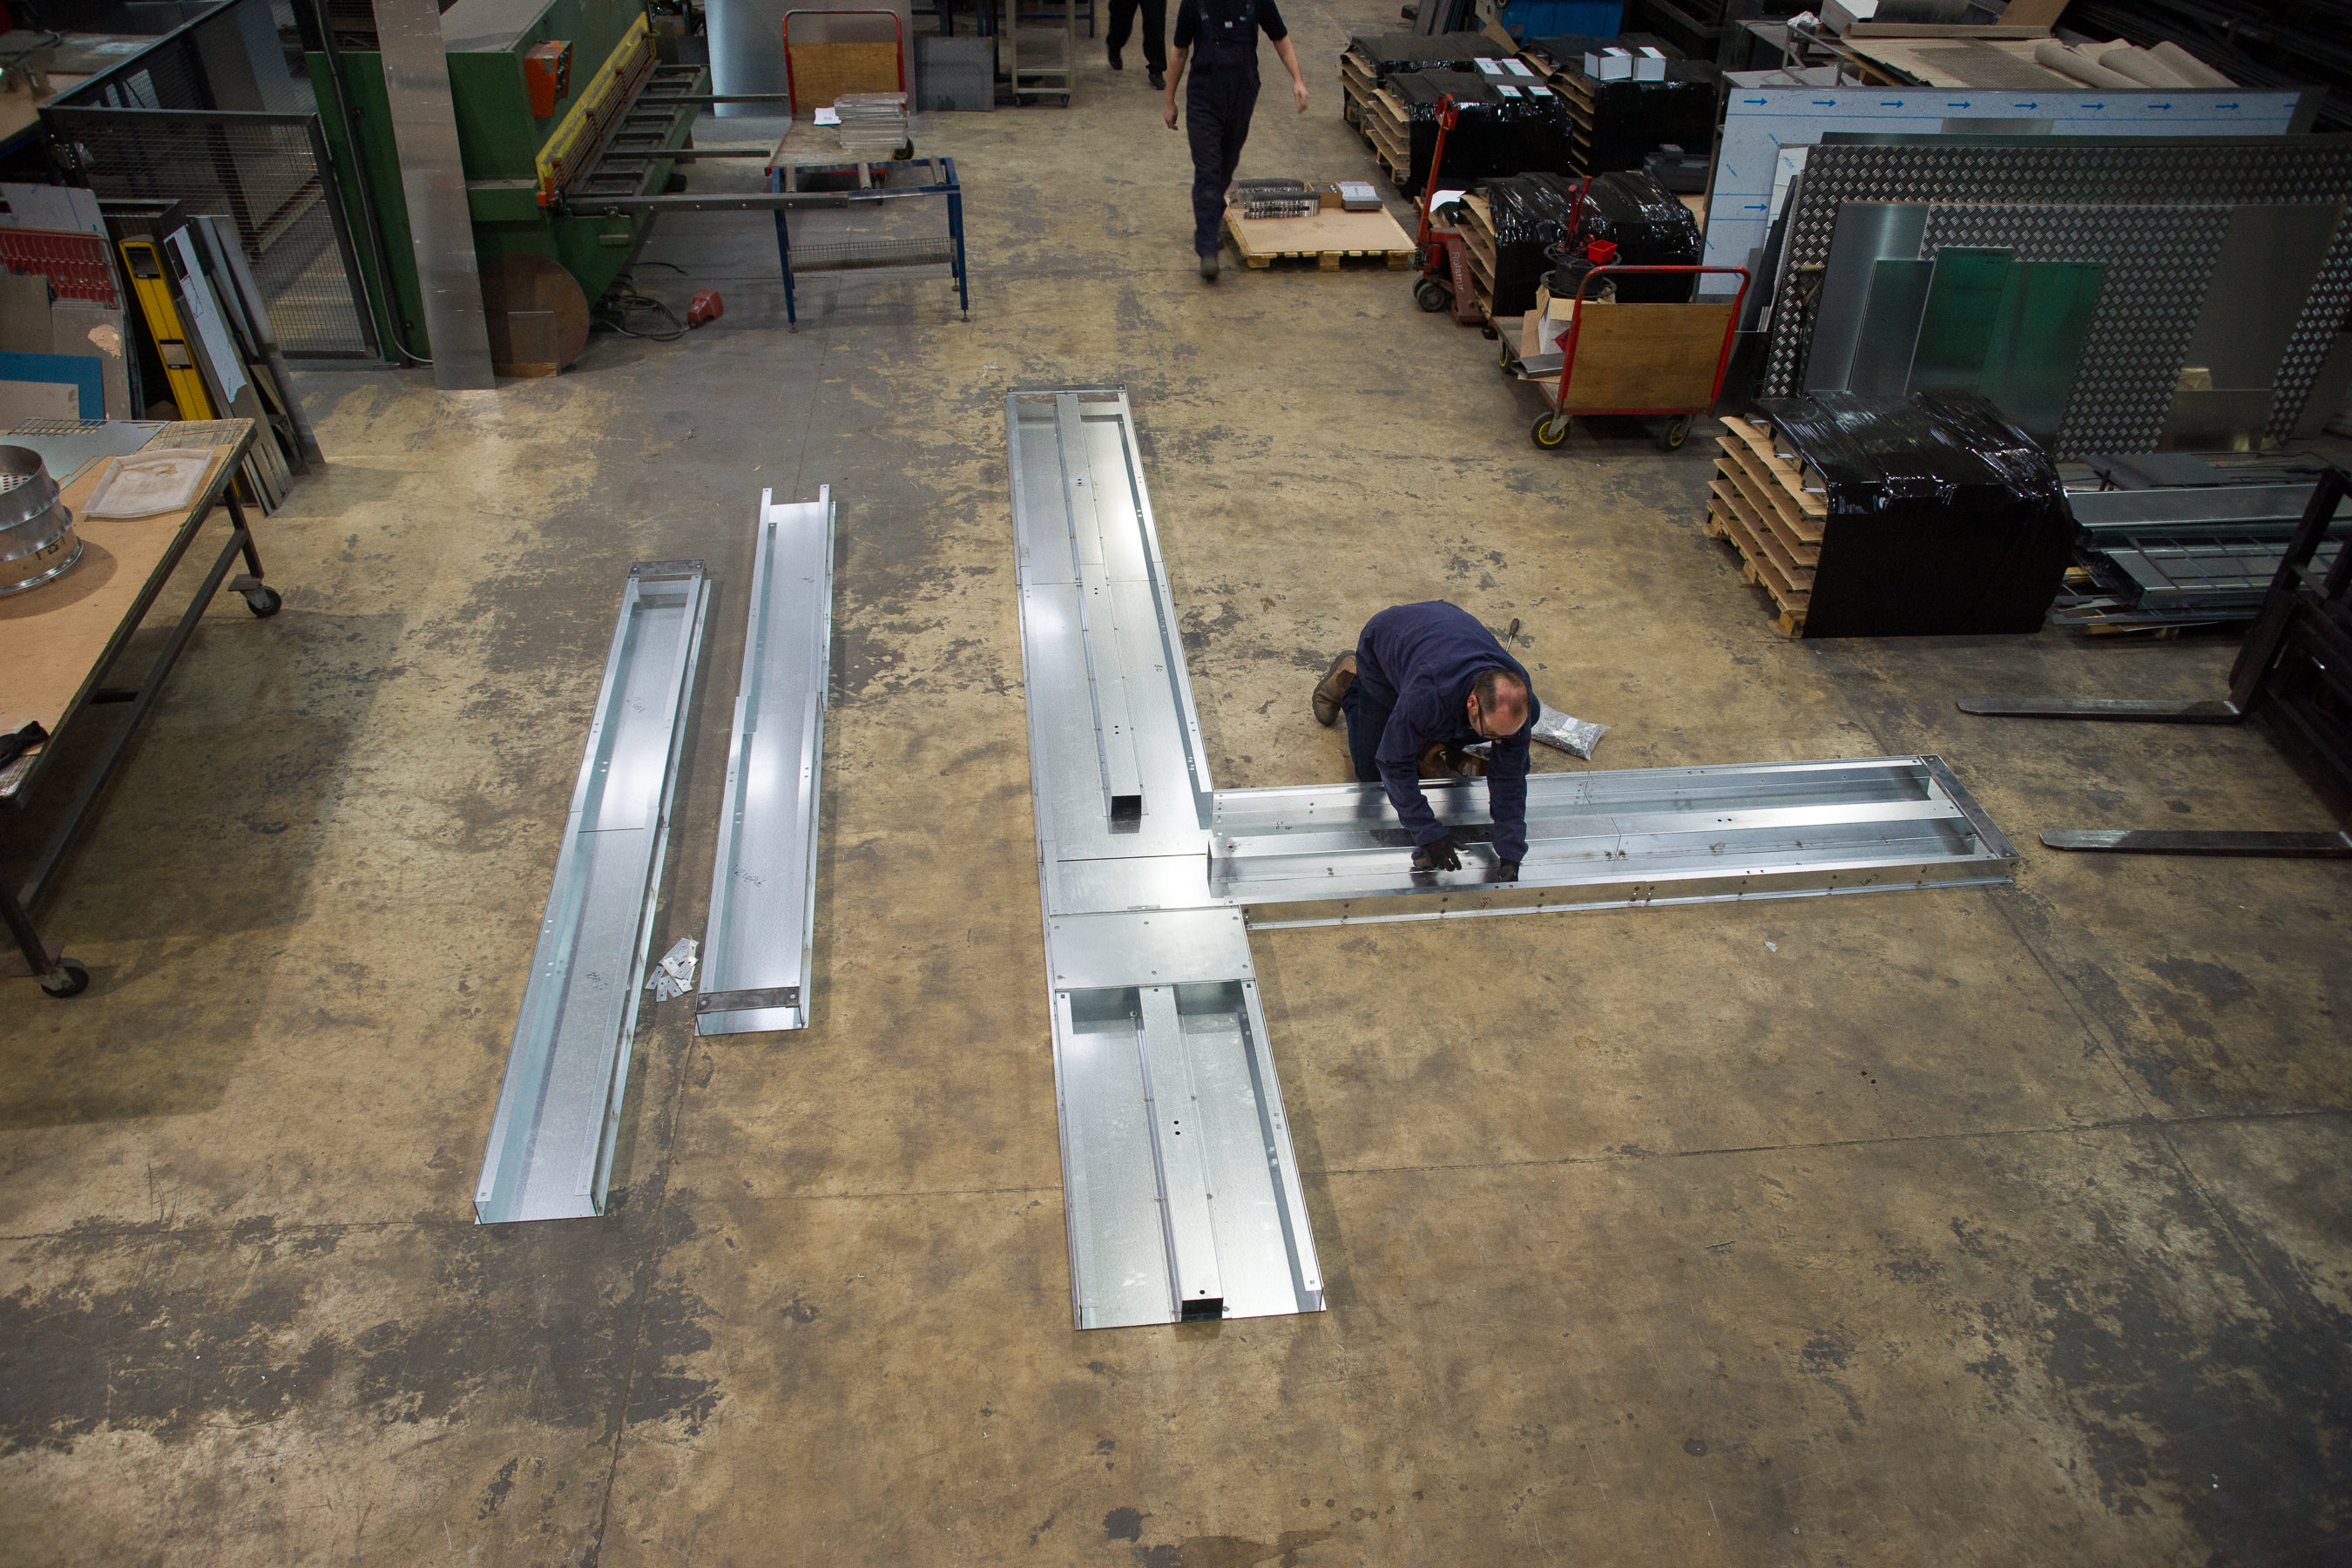 Trunking being manufactured